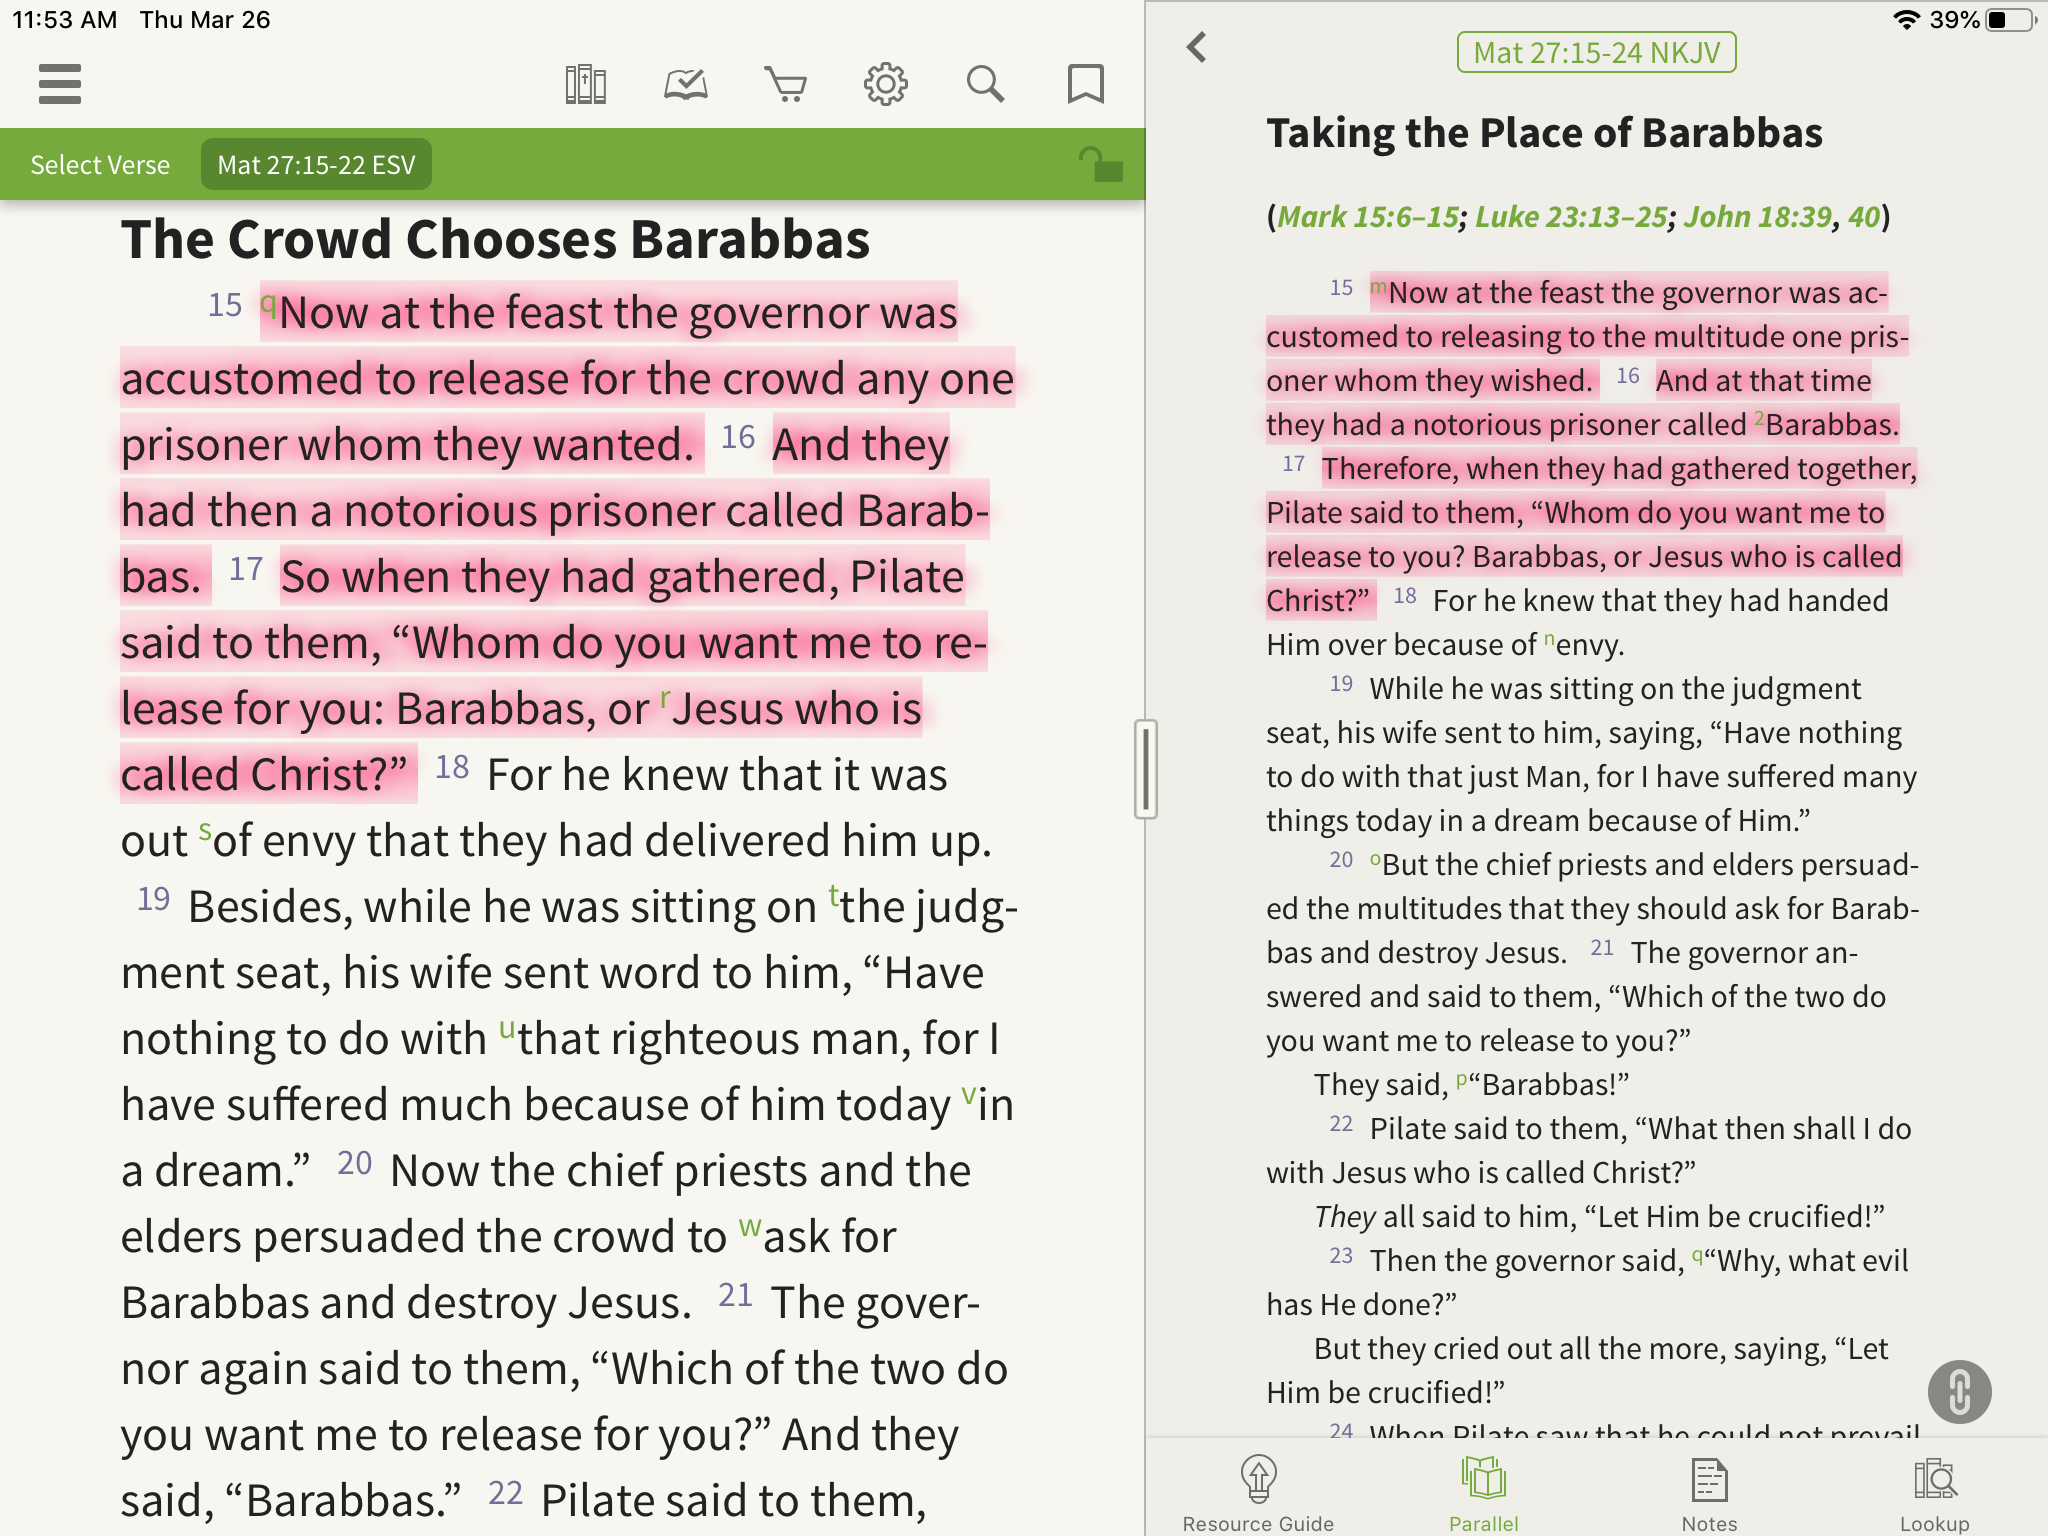 Olive Tree Bible App with Parallel Bible open